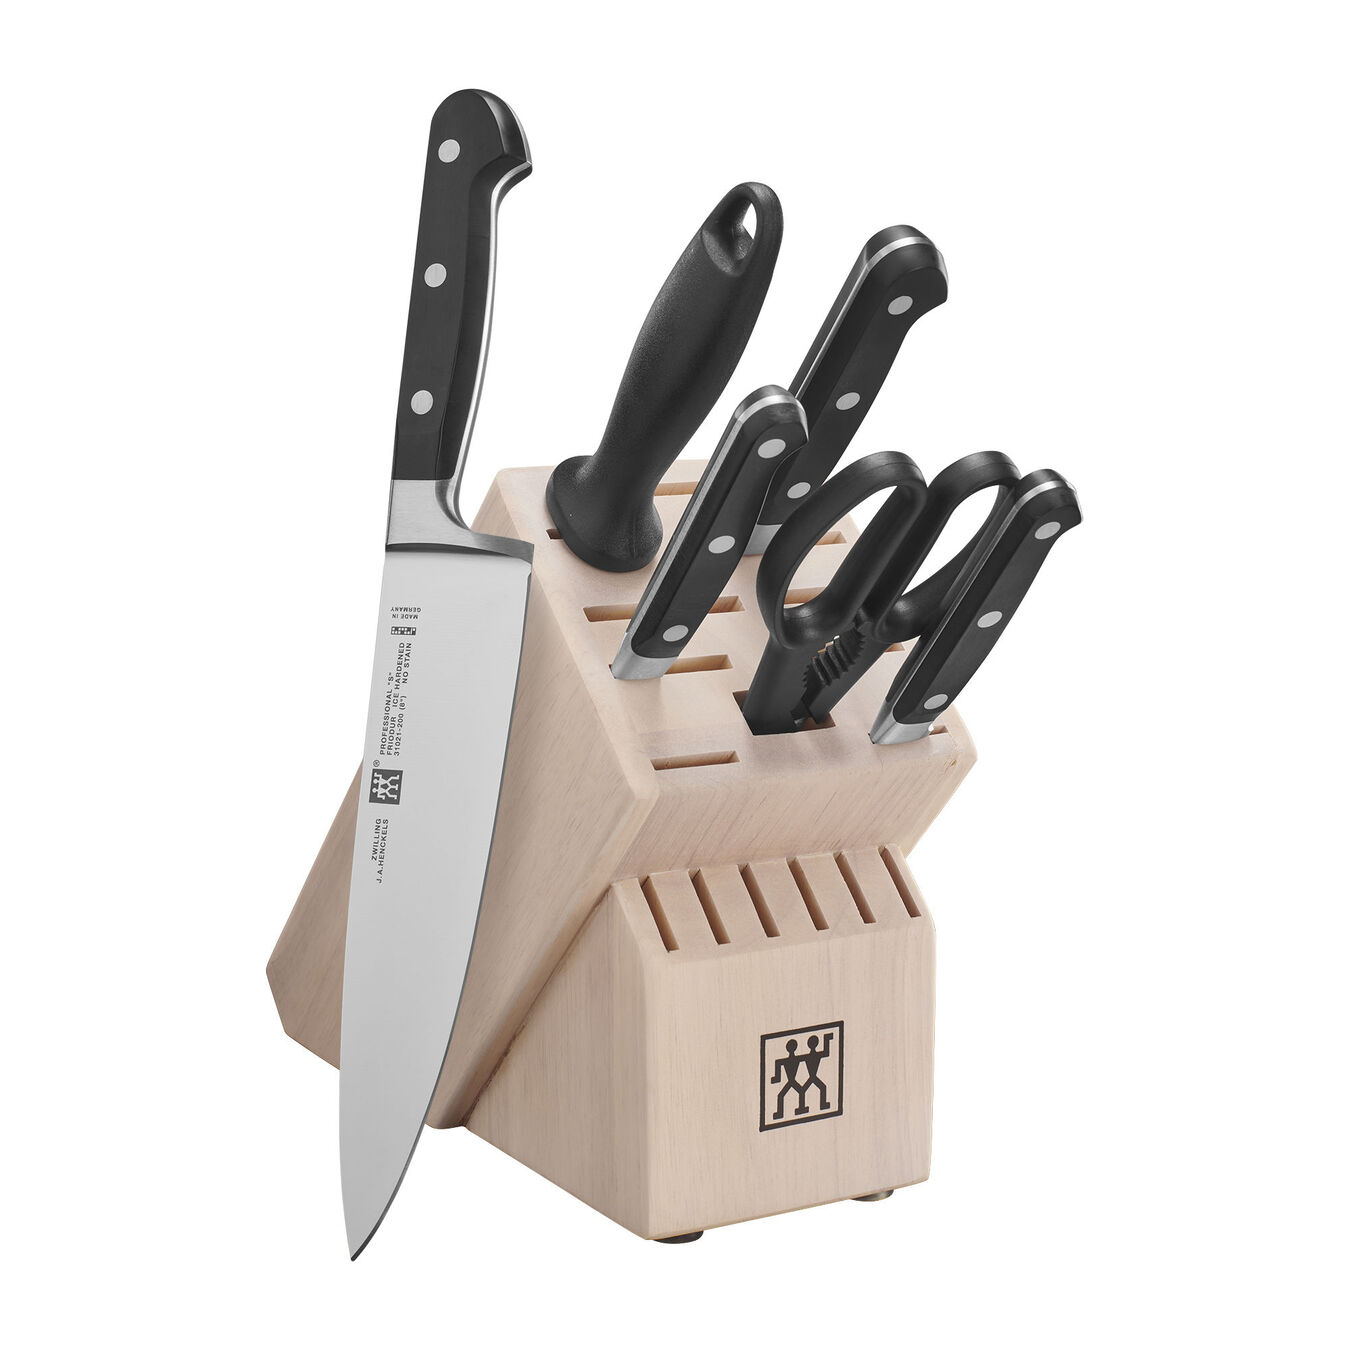 7-pc Knife block set ,,large 1